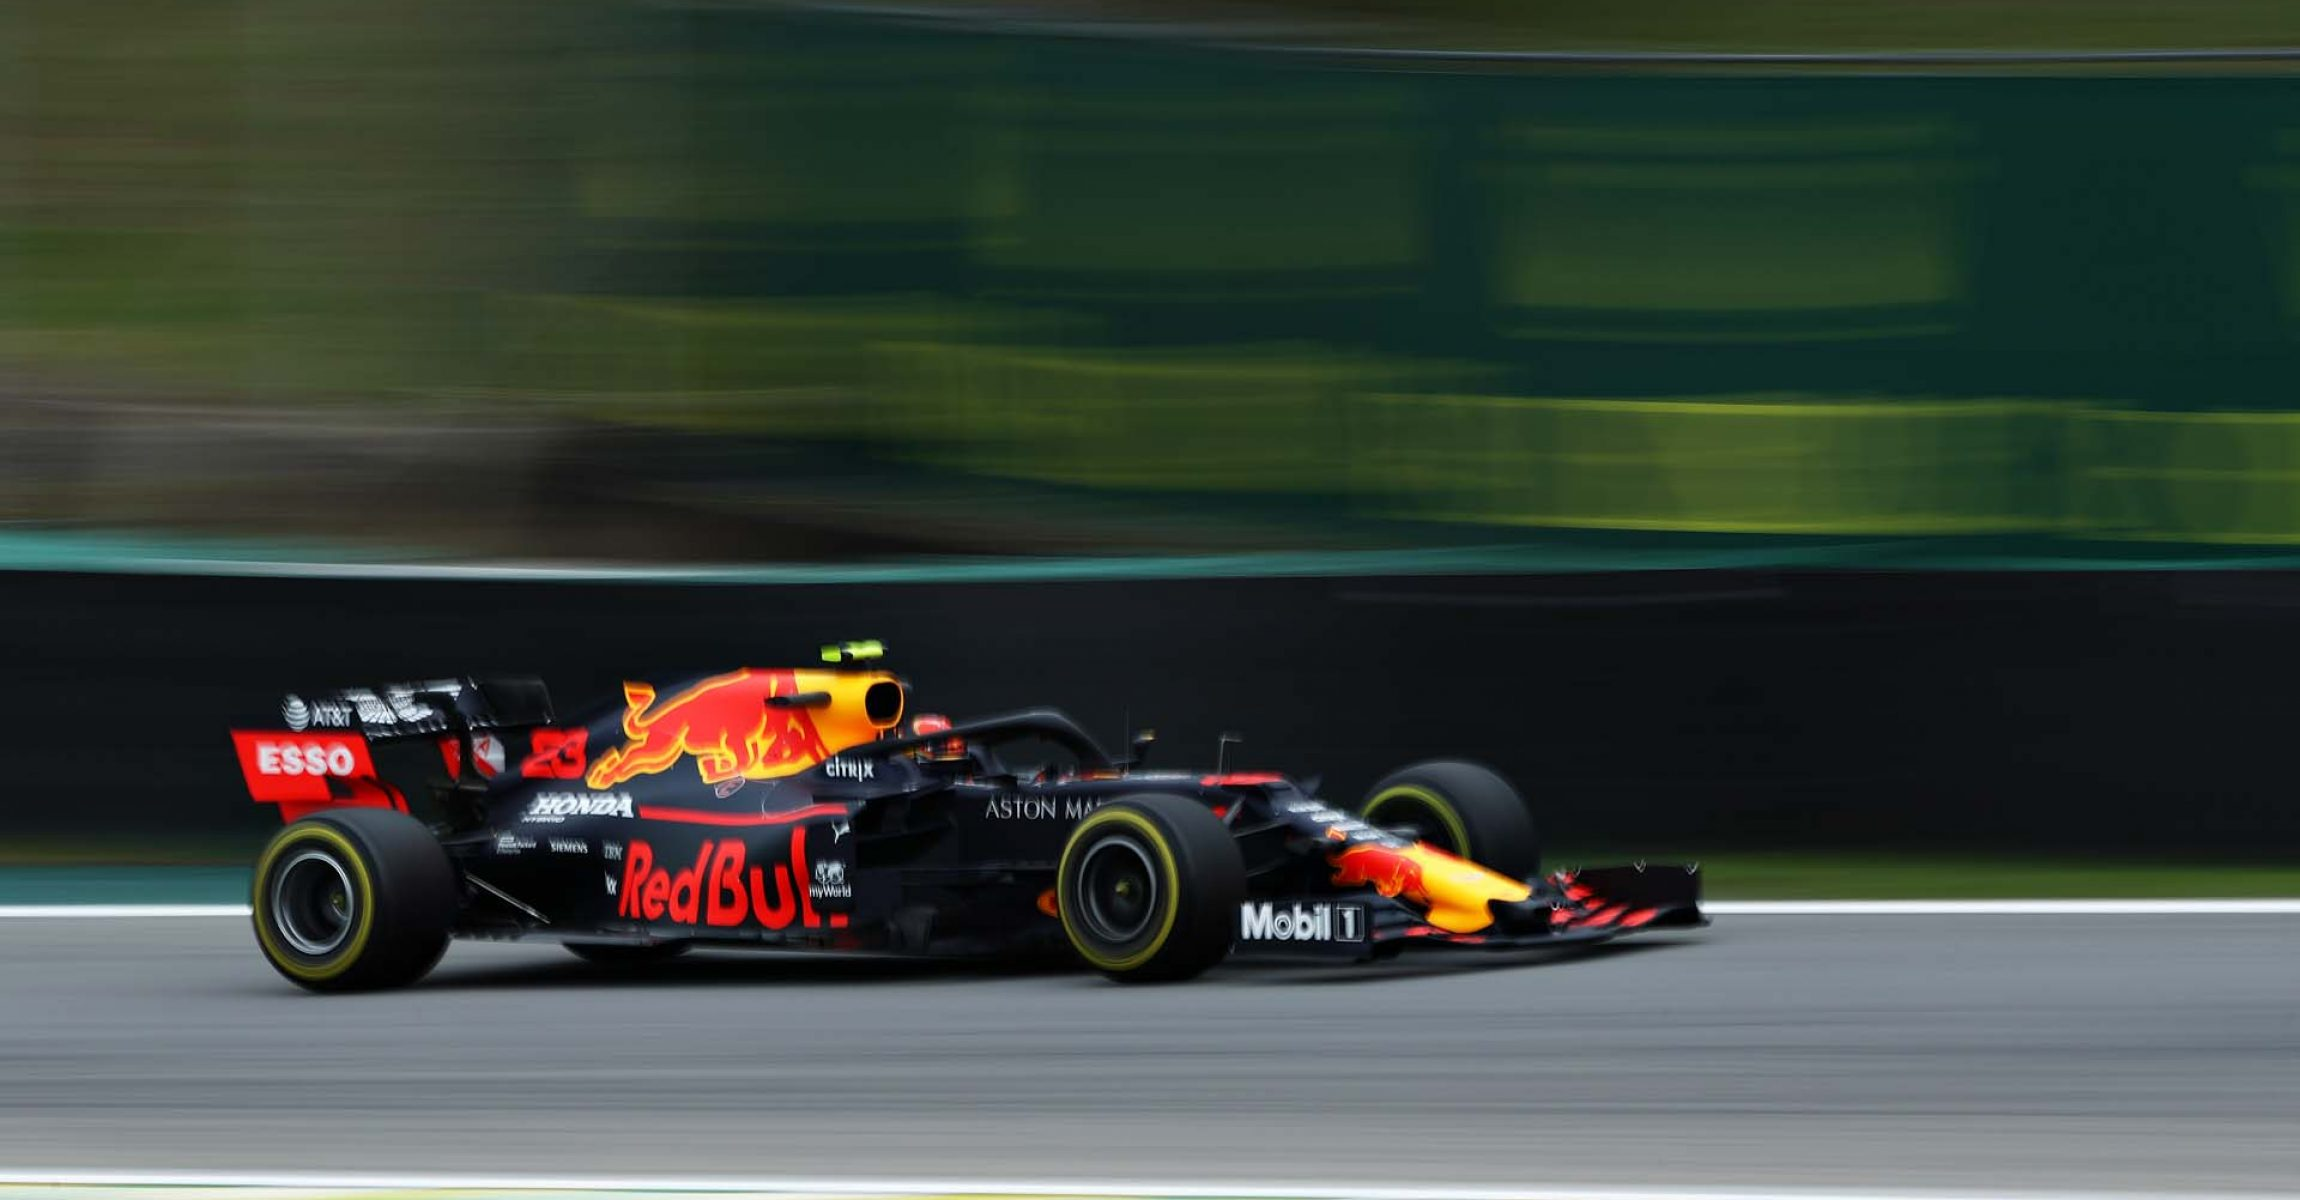 SAO PAULO, BRAZIL - NOVEMBER 15: Alexander Albon of Thailand driving the (23) Aston Martin Red Bull Racing RB15 on track during practice for the F1 Grand Prix of Brazil at Autodromo Jose Carlos Pace on November 15, 2019 in Sao Paulo, Brazil. (Photo by Robert Cianflone/Getty Images) // Getty Images / Red Bull Content Pool // AP-226RUHP391W11 // Usage for editorial use only //